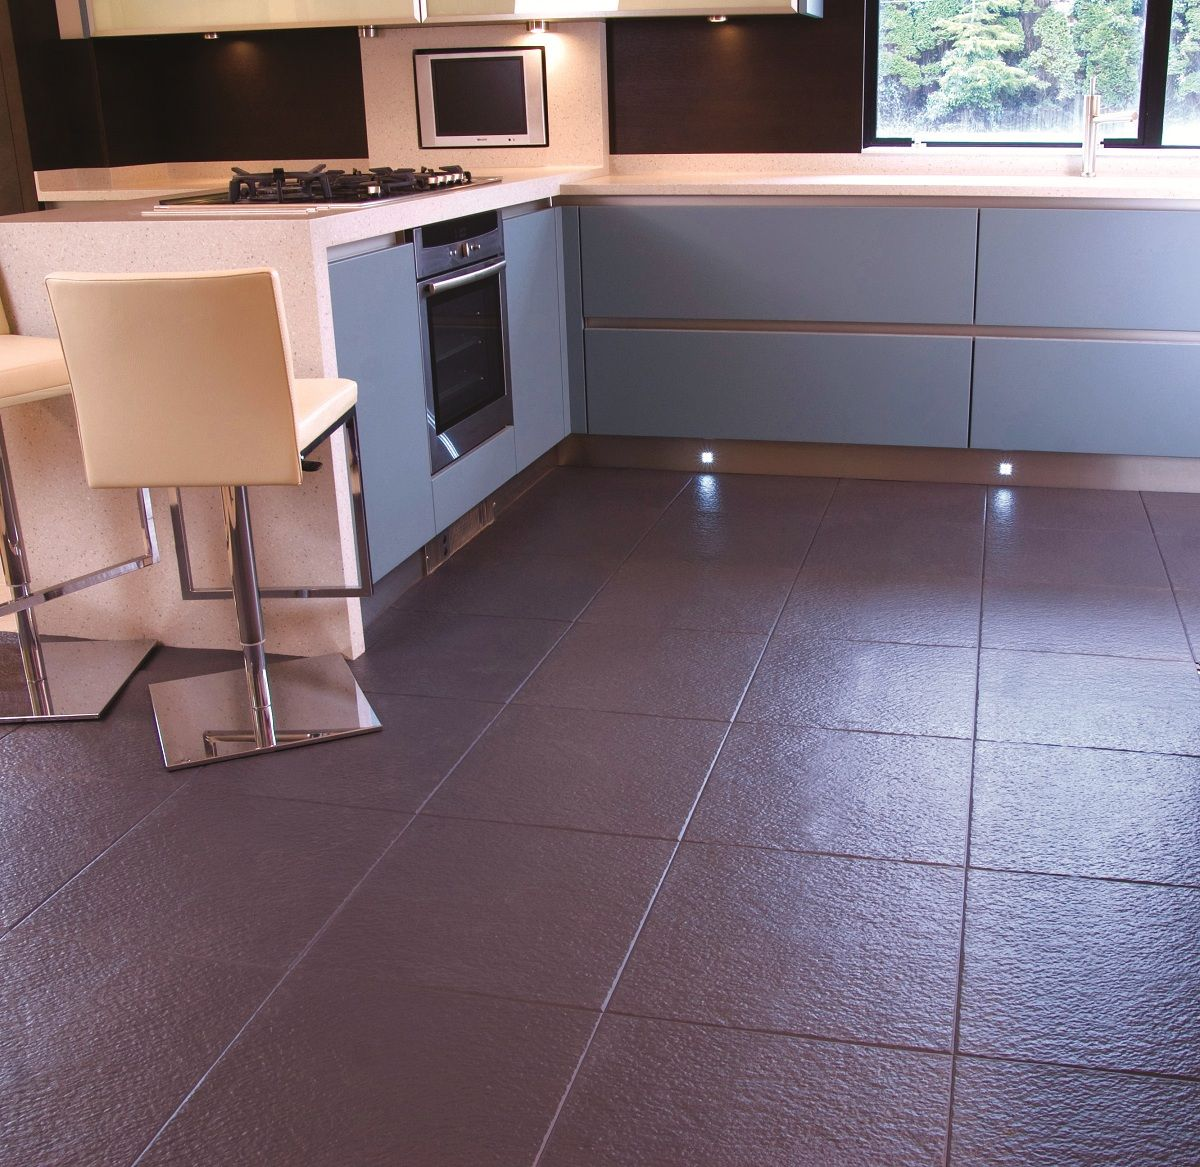 Residential rubber floor tile google search house pinterest residential rubber floor tile google search dailygadgetfo Images